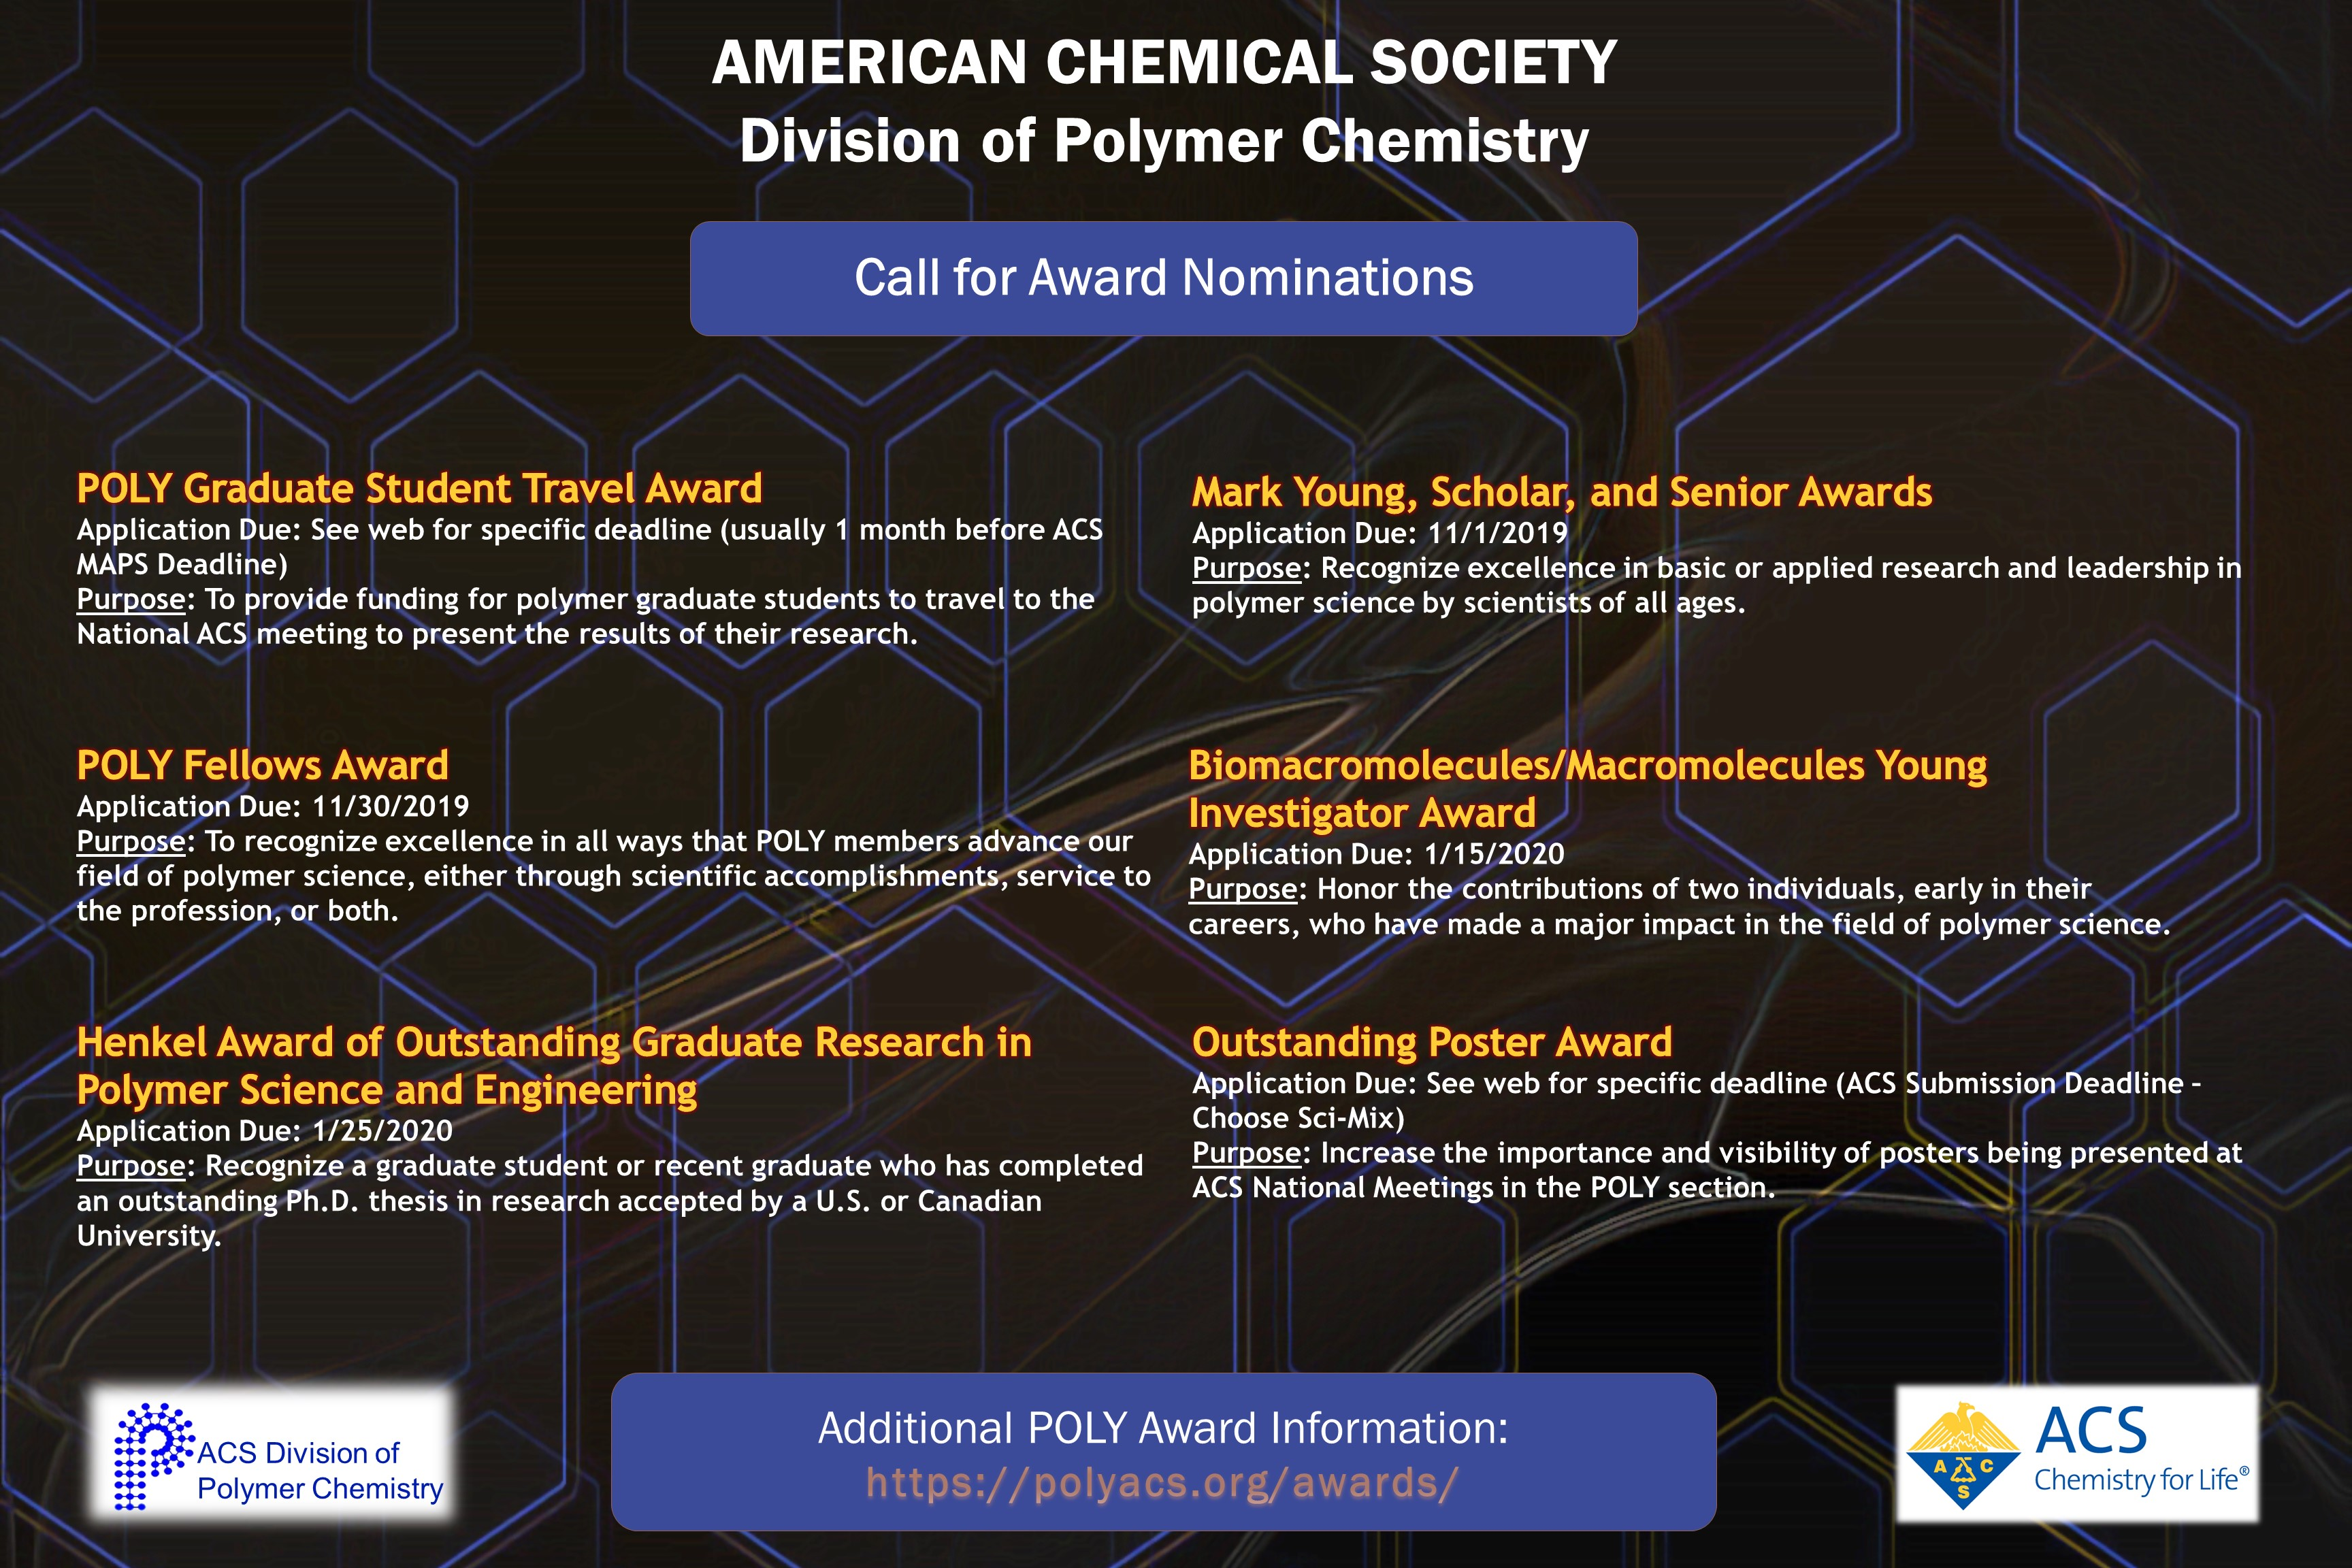 Division of Polymer Chemistry, Inc